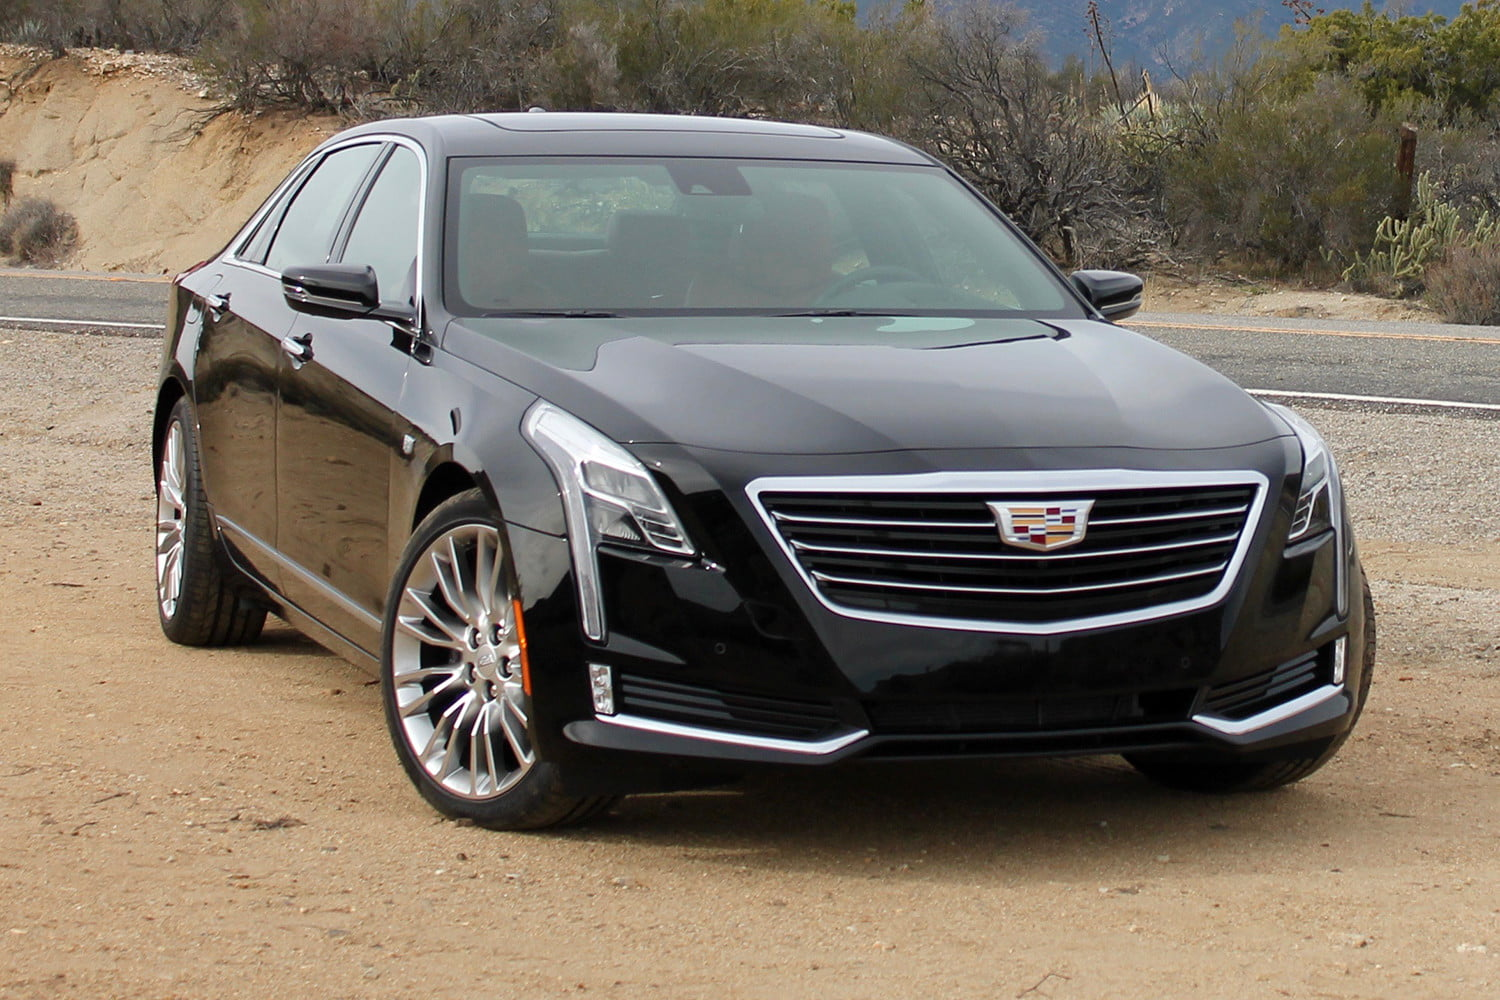 2016 cadillac ct6 first drive digital trends. Black Bedroom Furniture Sets. Home Design Ideas